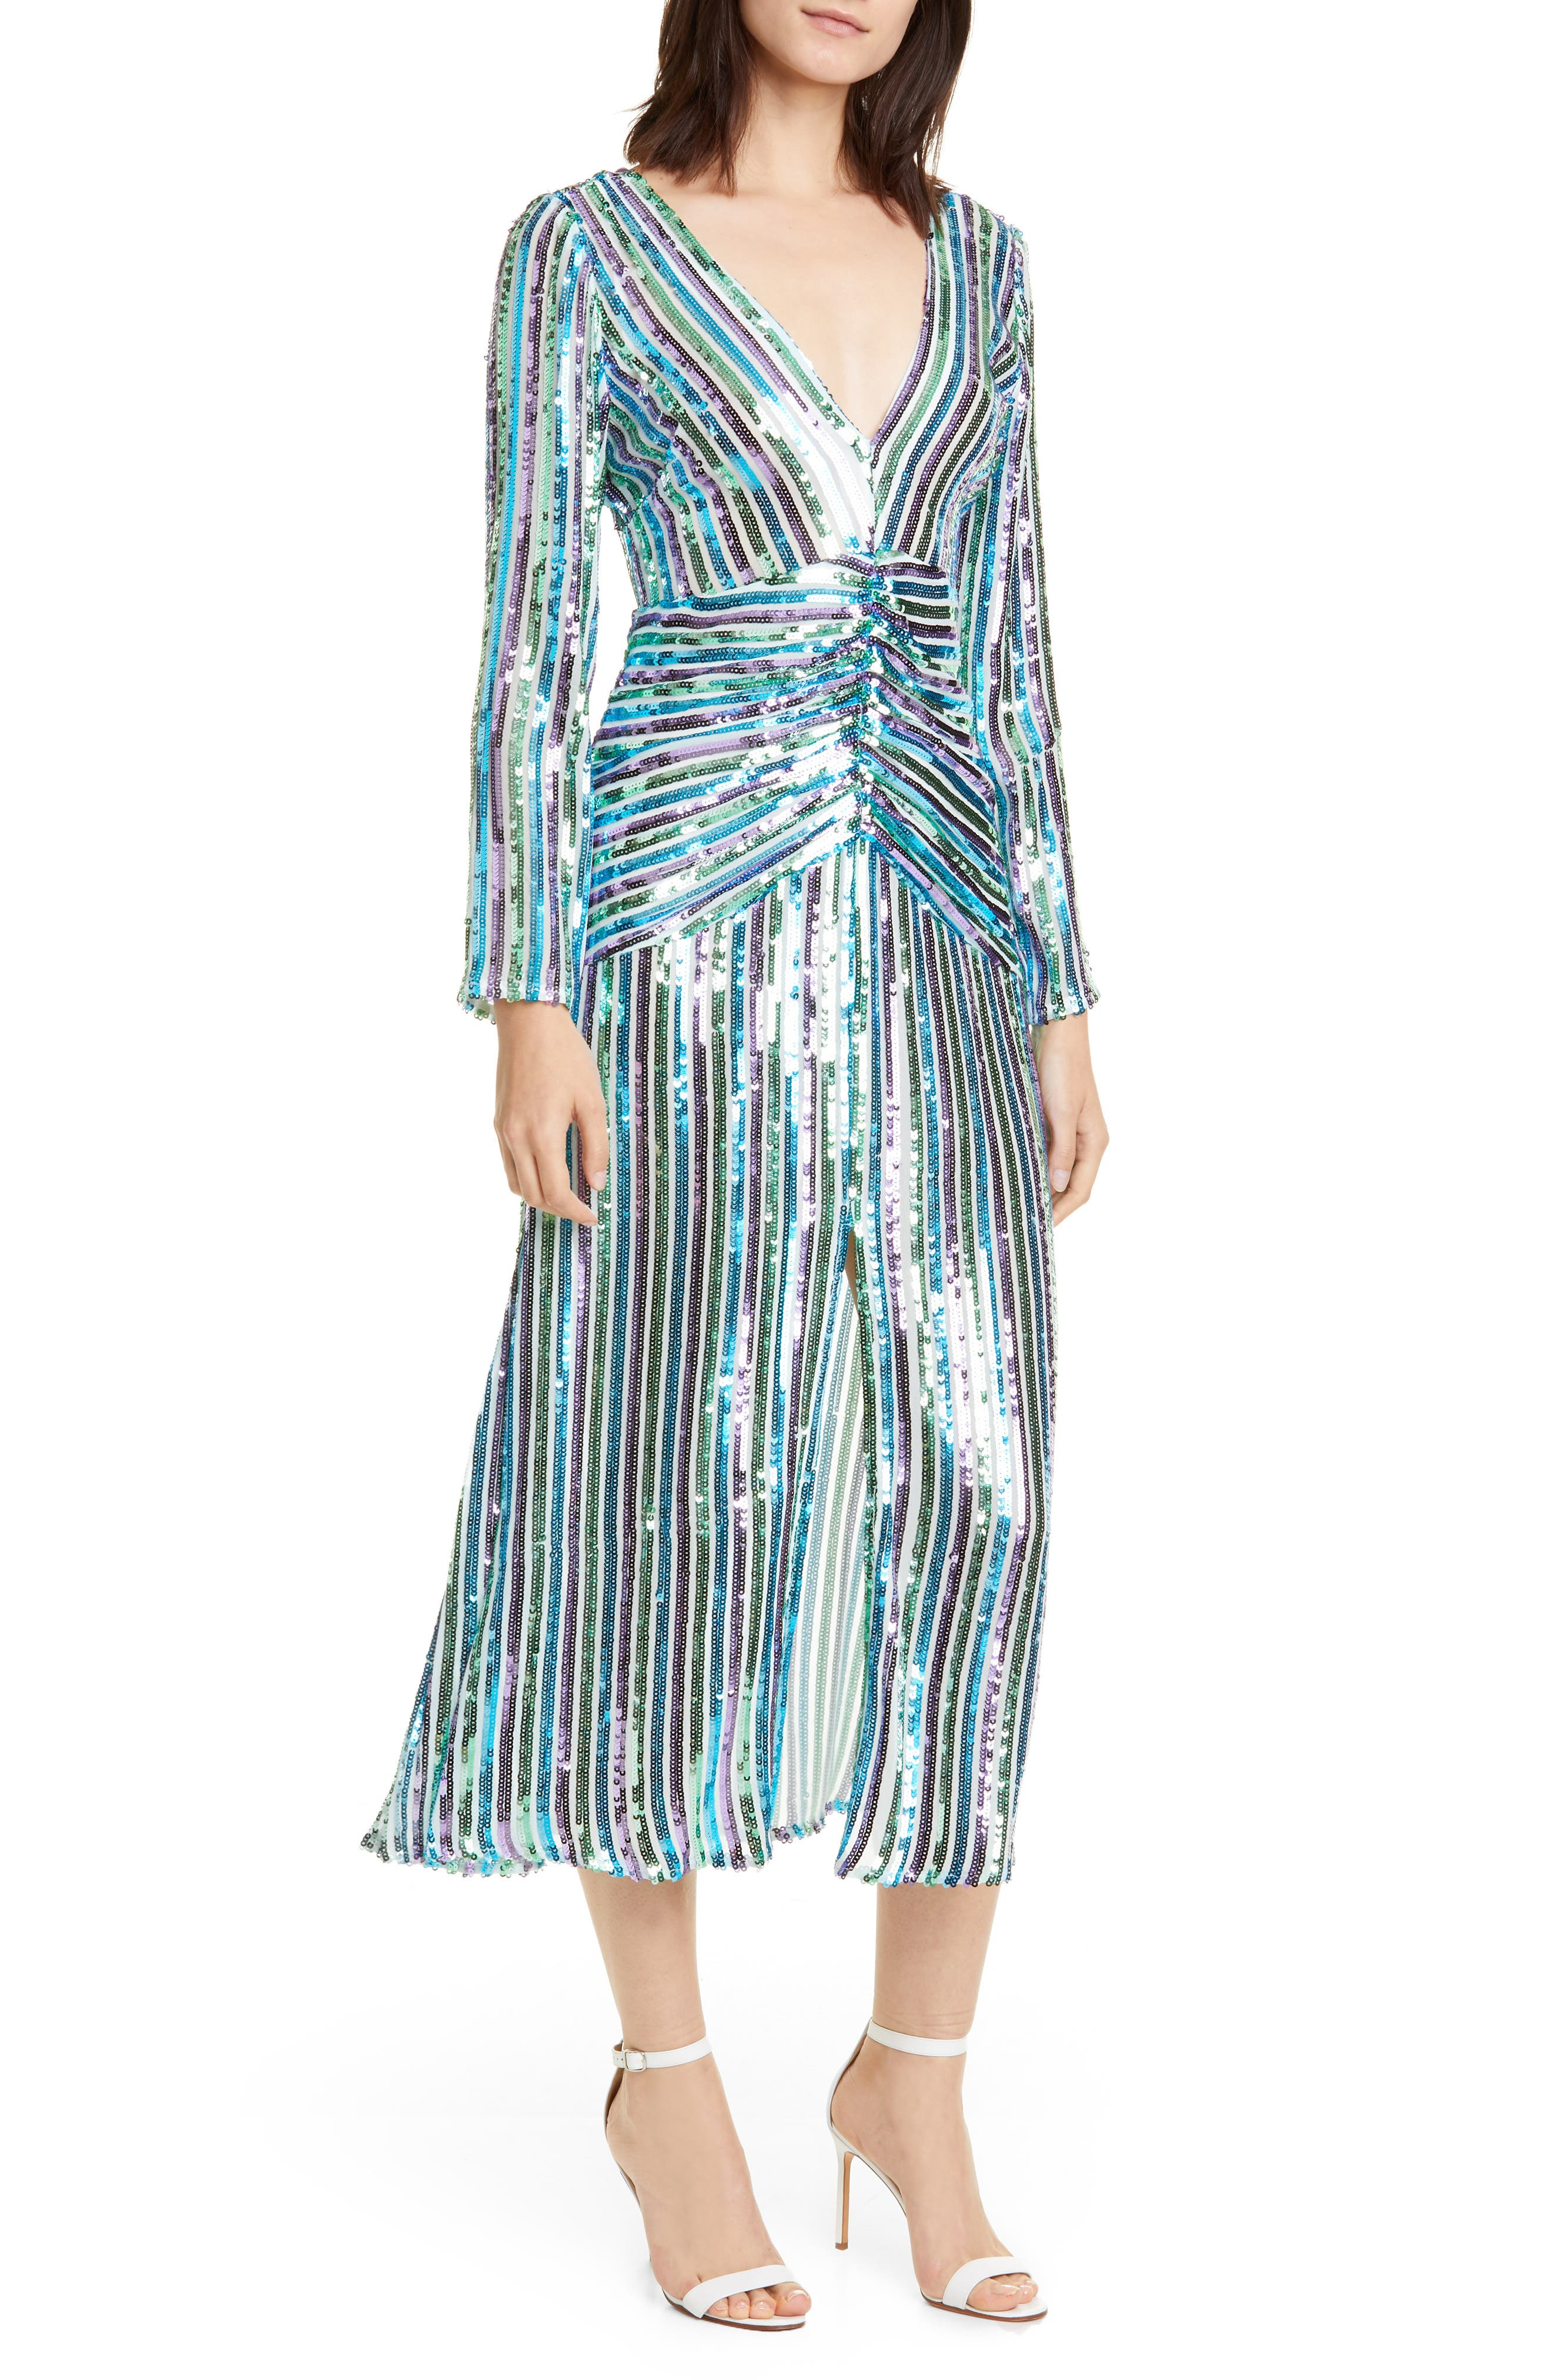 70s Prom, Formal, Evening, Party Dresses Womens Rixo Emmy Sequin Stripe Long Sleeve Maxi Dress $545.00 AT vintagedancer.com